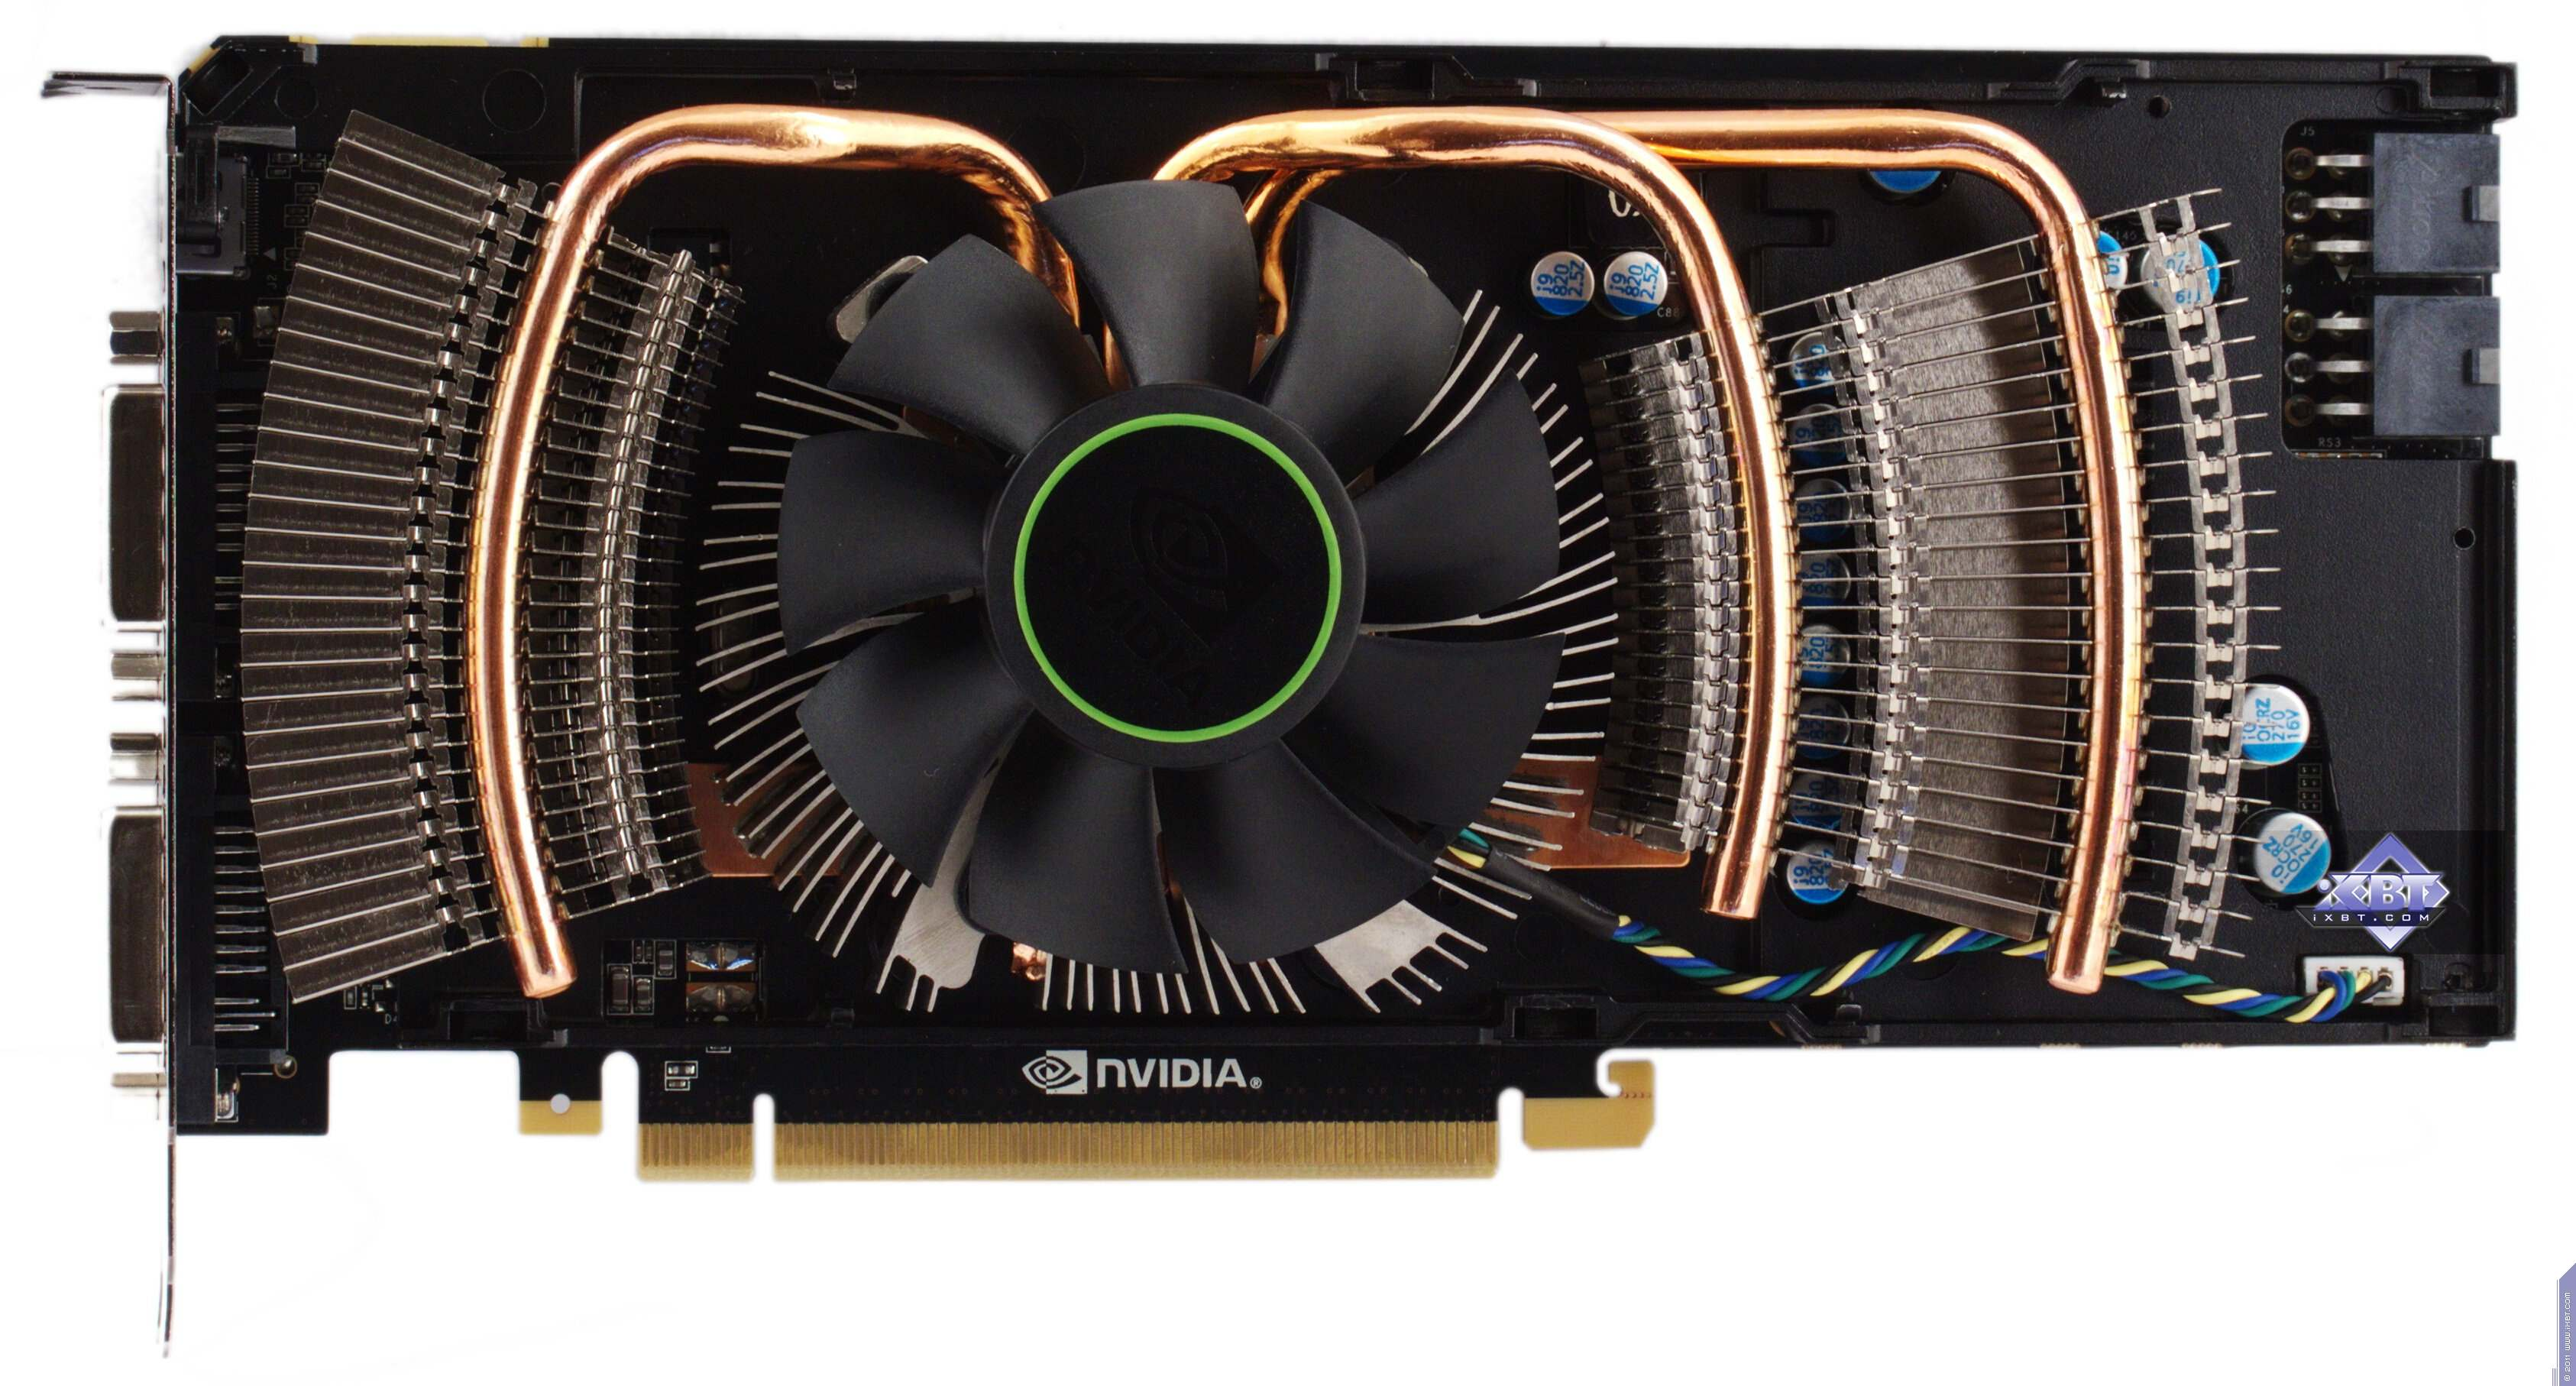 Video card Nvidia Geforce GTX 560 Ti: characteristics, comparison with analogues and reviews 34